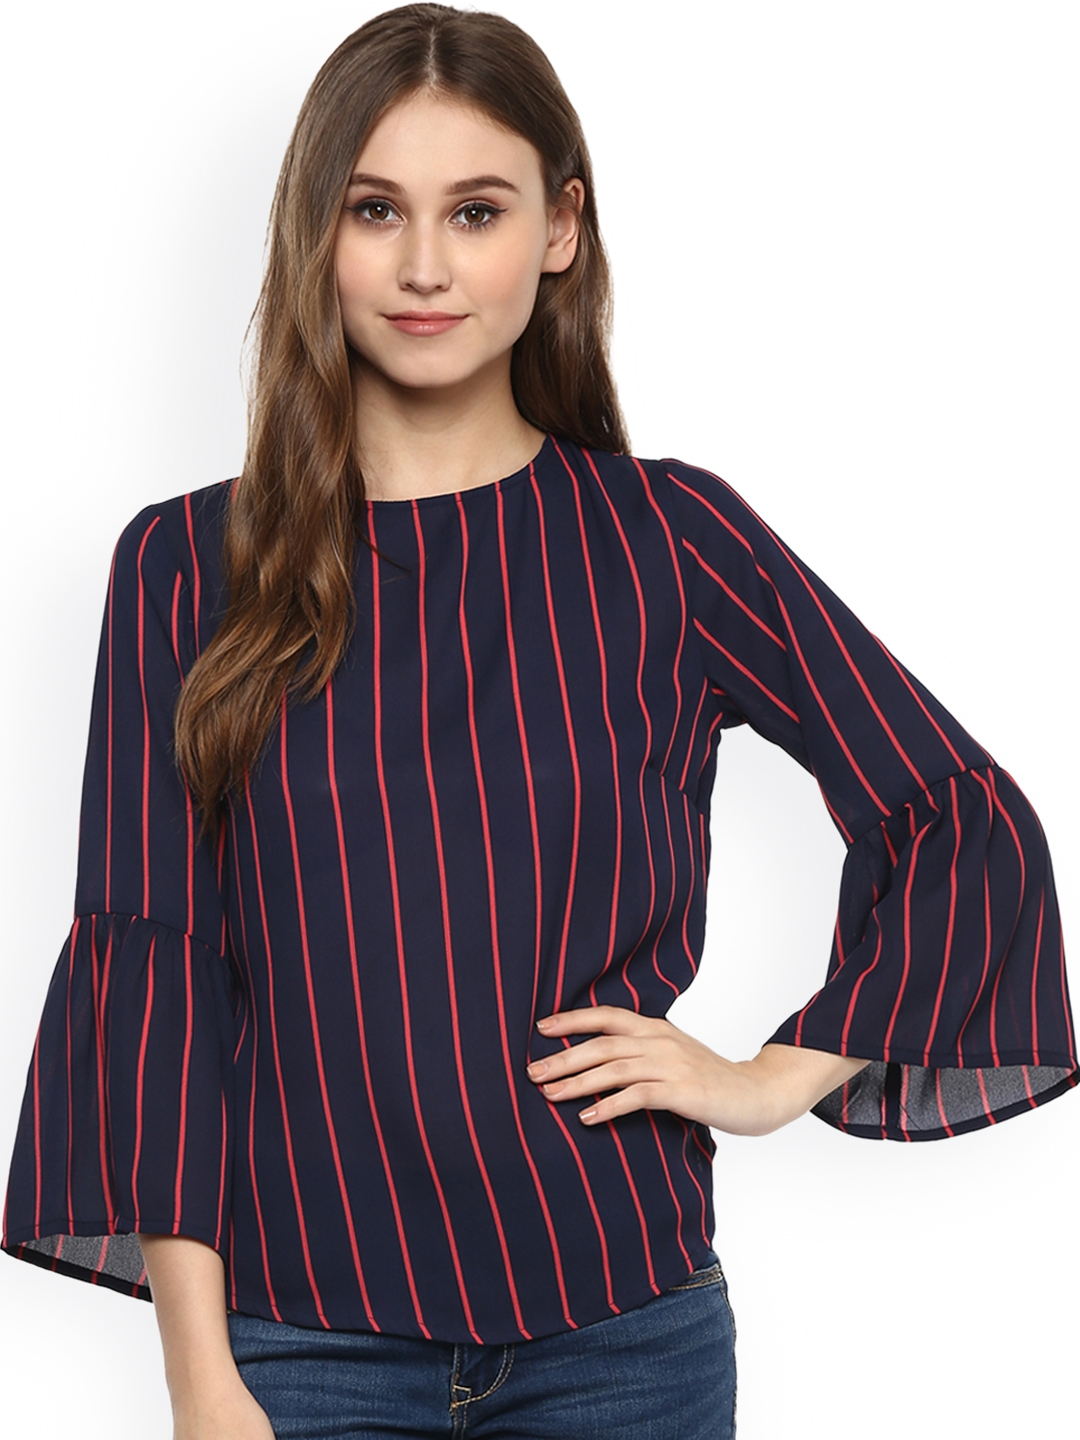 53a525fd379 Buy Harpa Women Navy Blue & Red Striped Top - Tops for Women 2102700 ...